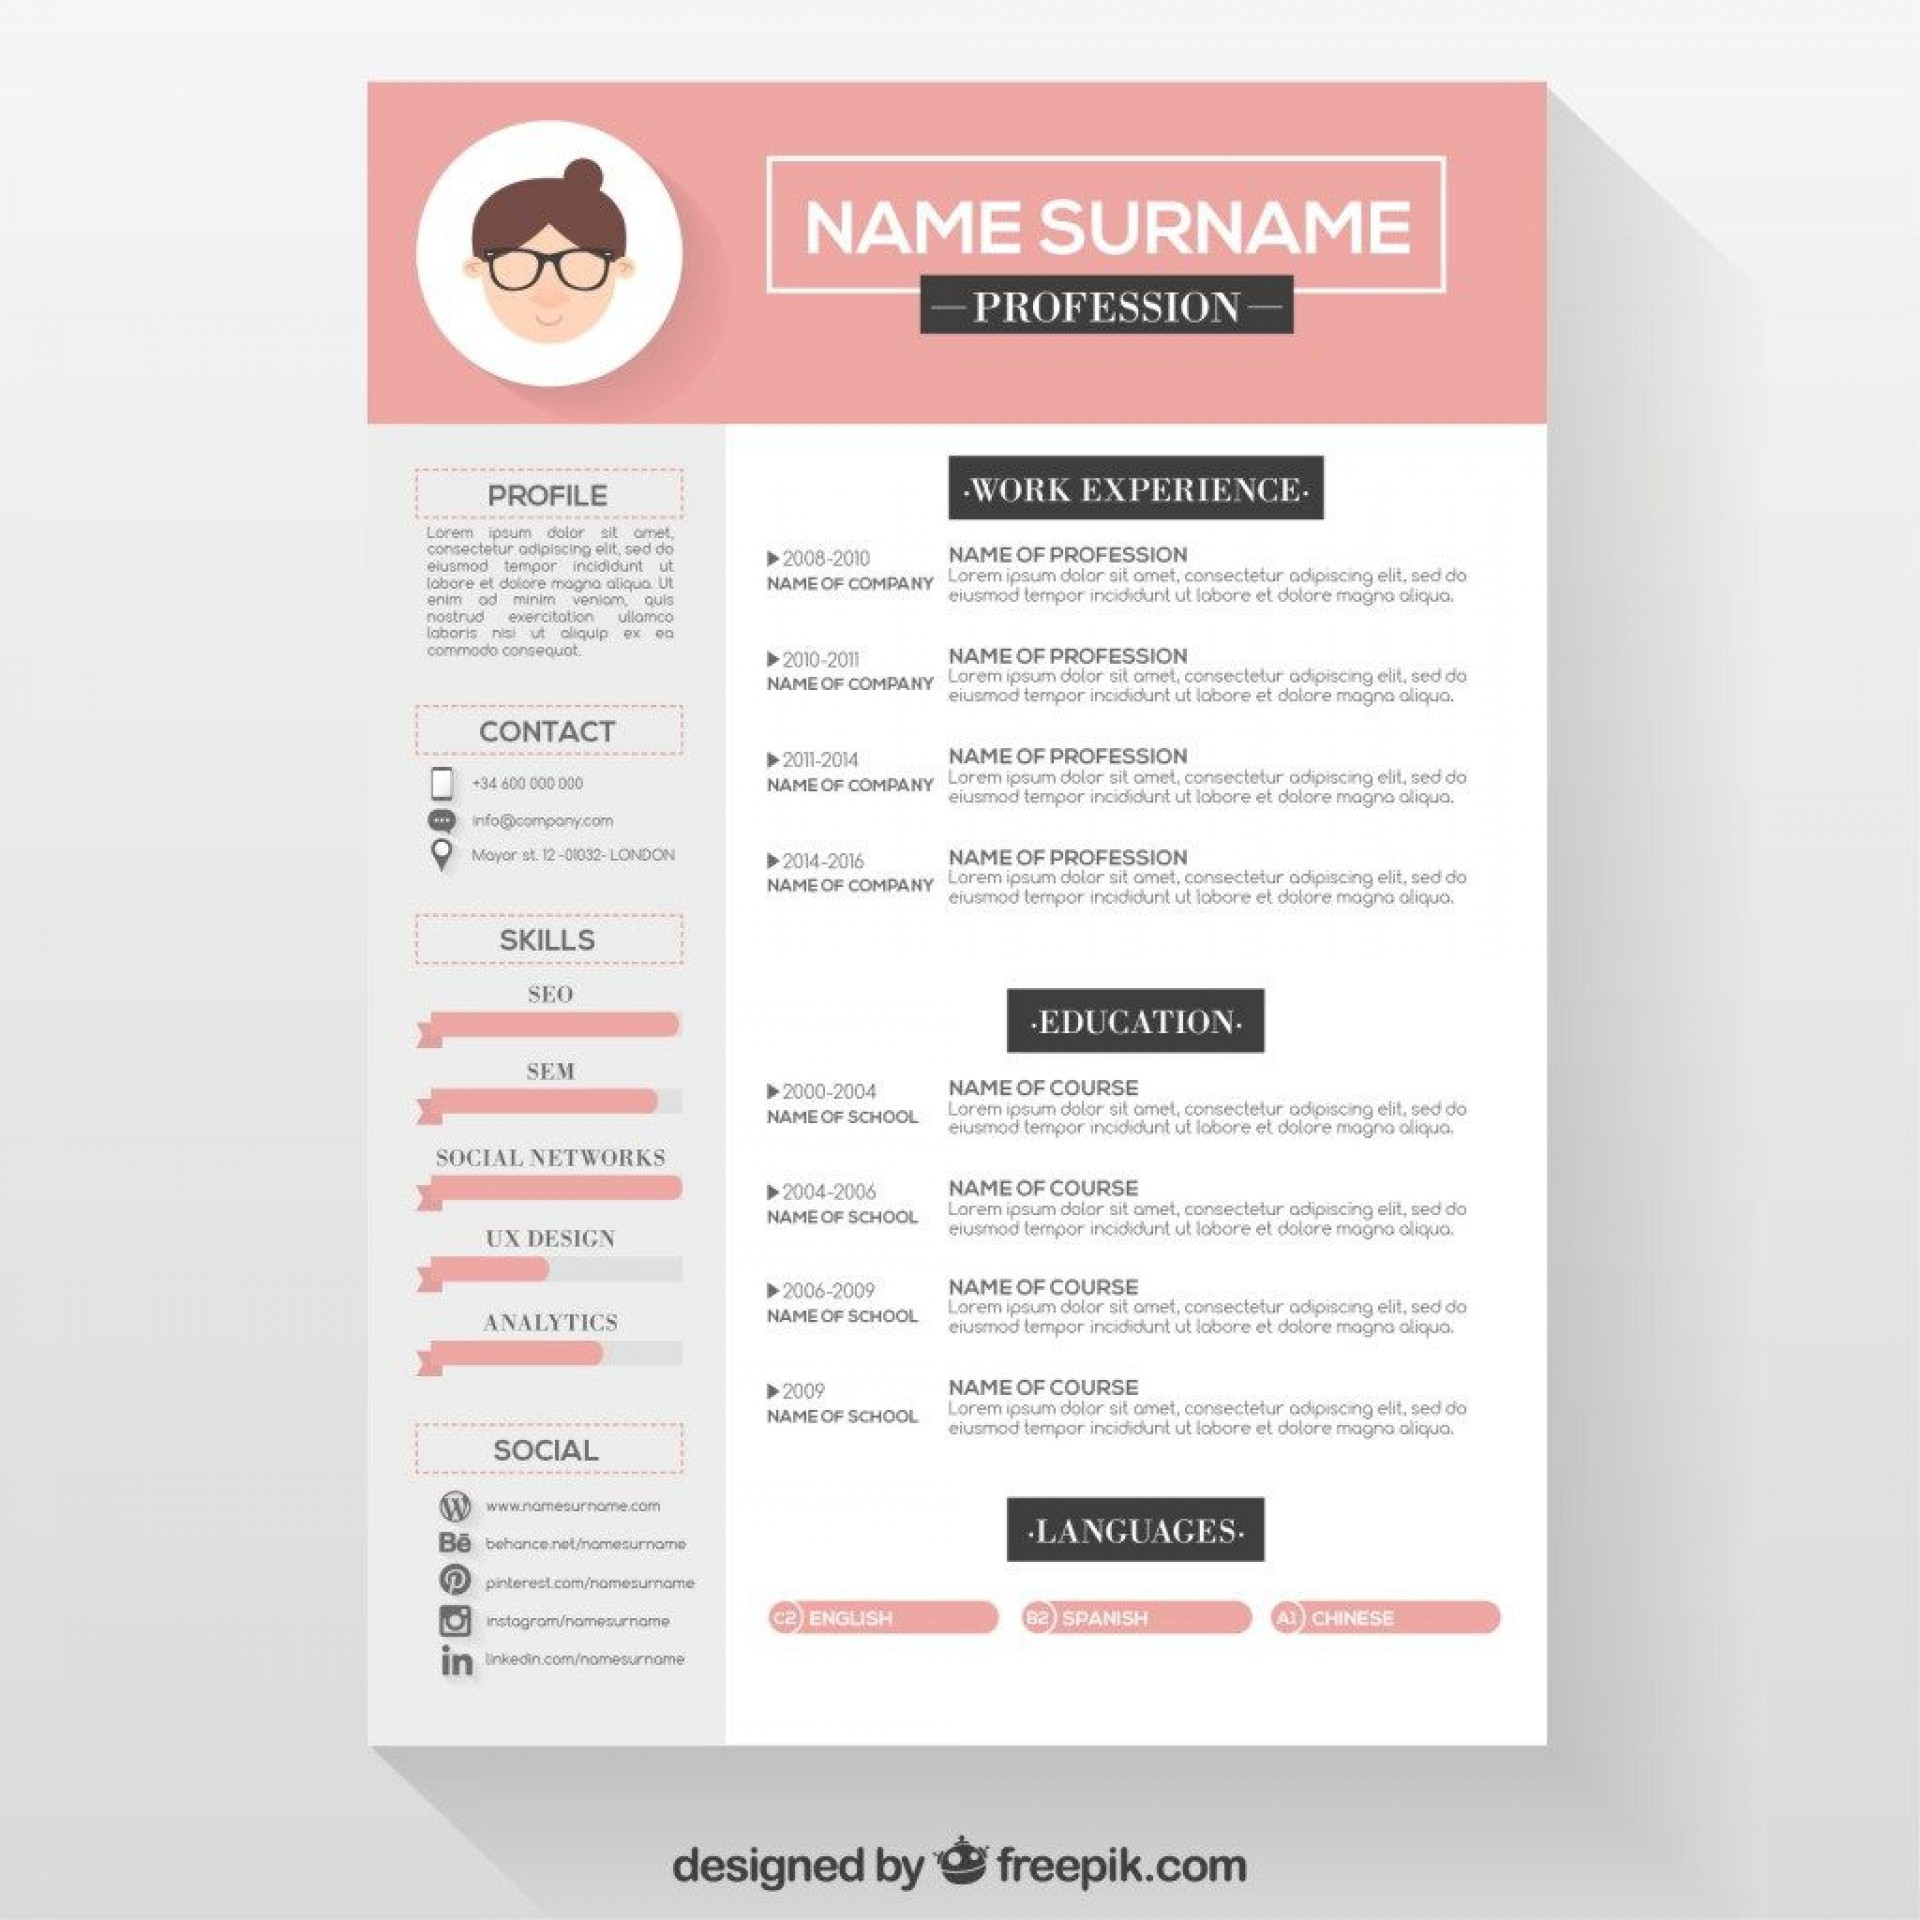 007 Frightening Resume Template For Free Example  Best Word Freelance Writer Microsoft1920